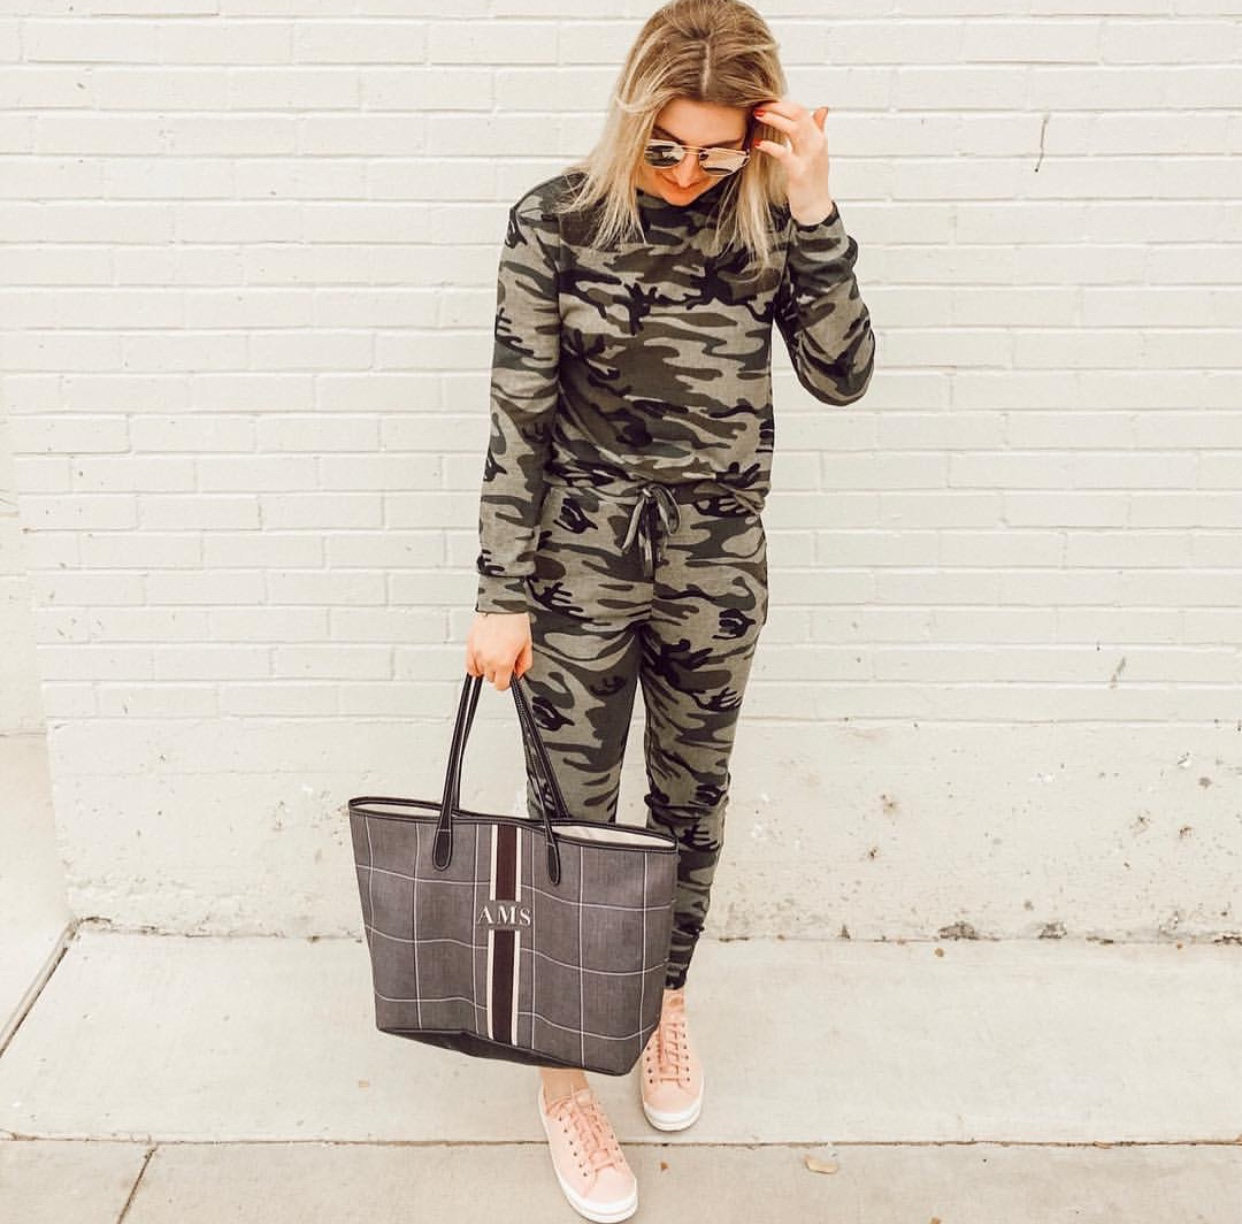 Camo lounge set | Audrey Madison Stowe a fashion and lifestyle blogger